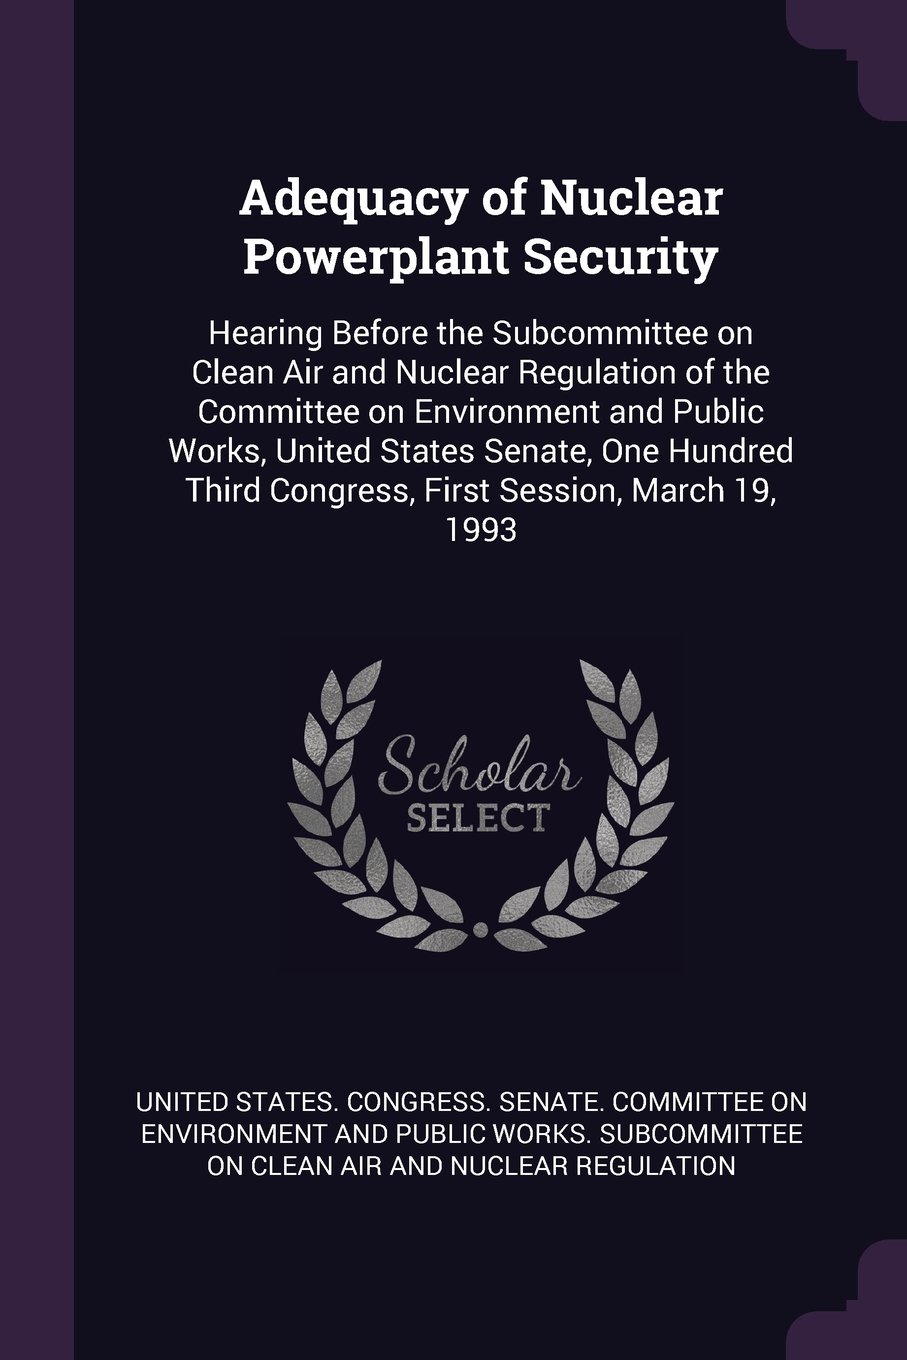 Download Adequacy of Nuclear Powerplant Security: Hearing Before the Subcommittee on Clean Air and Nuclear Regulation of the Committee on Environment and ... Third Congress, First Session, March 19, 1993 PDF